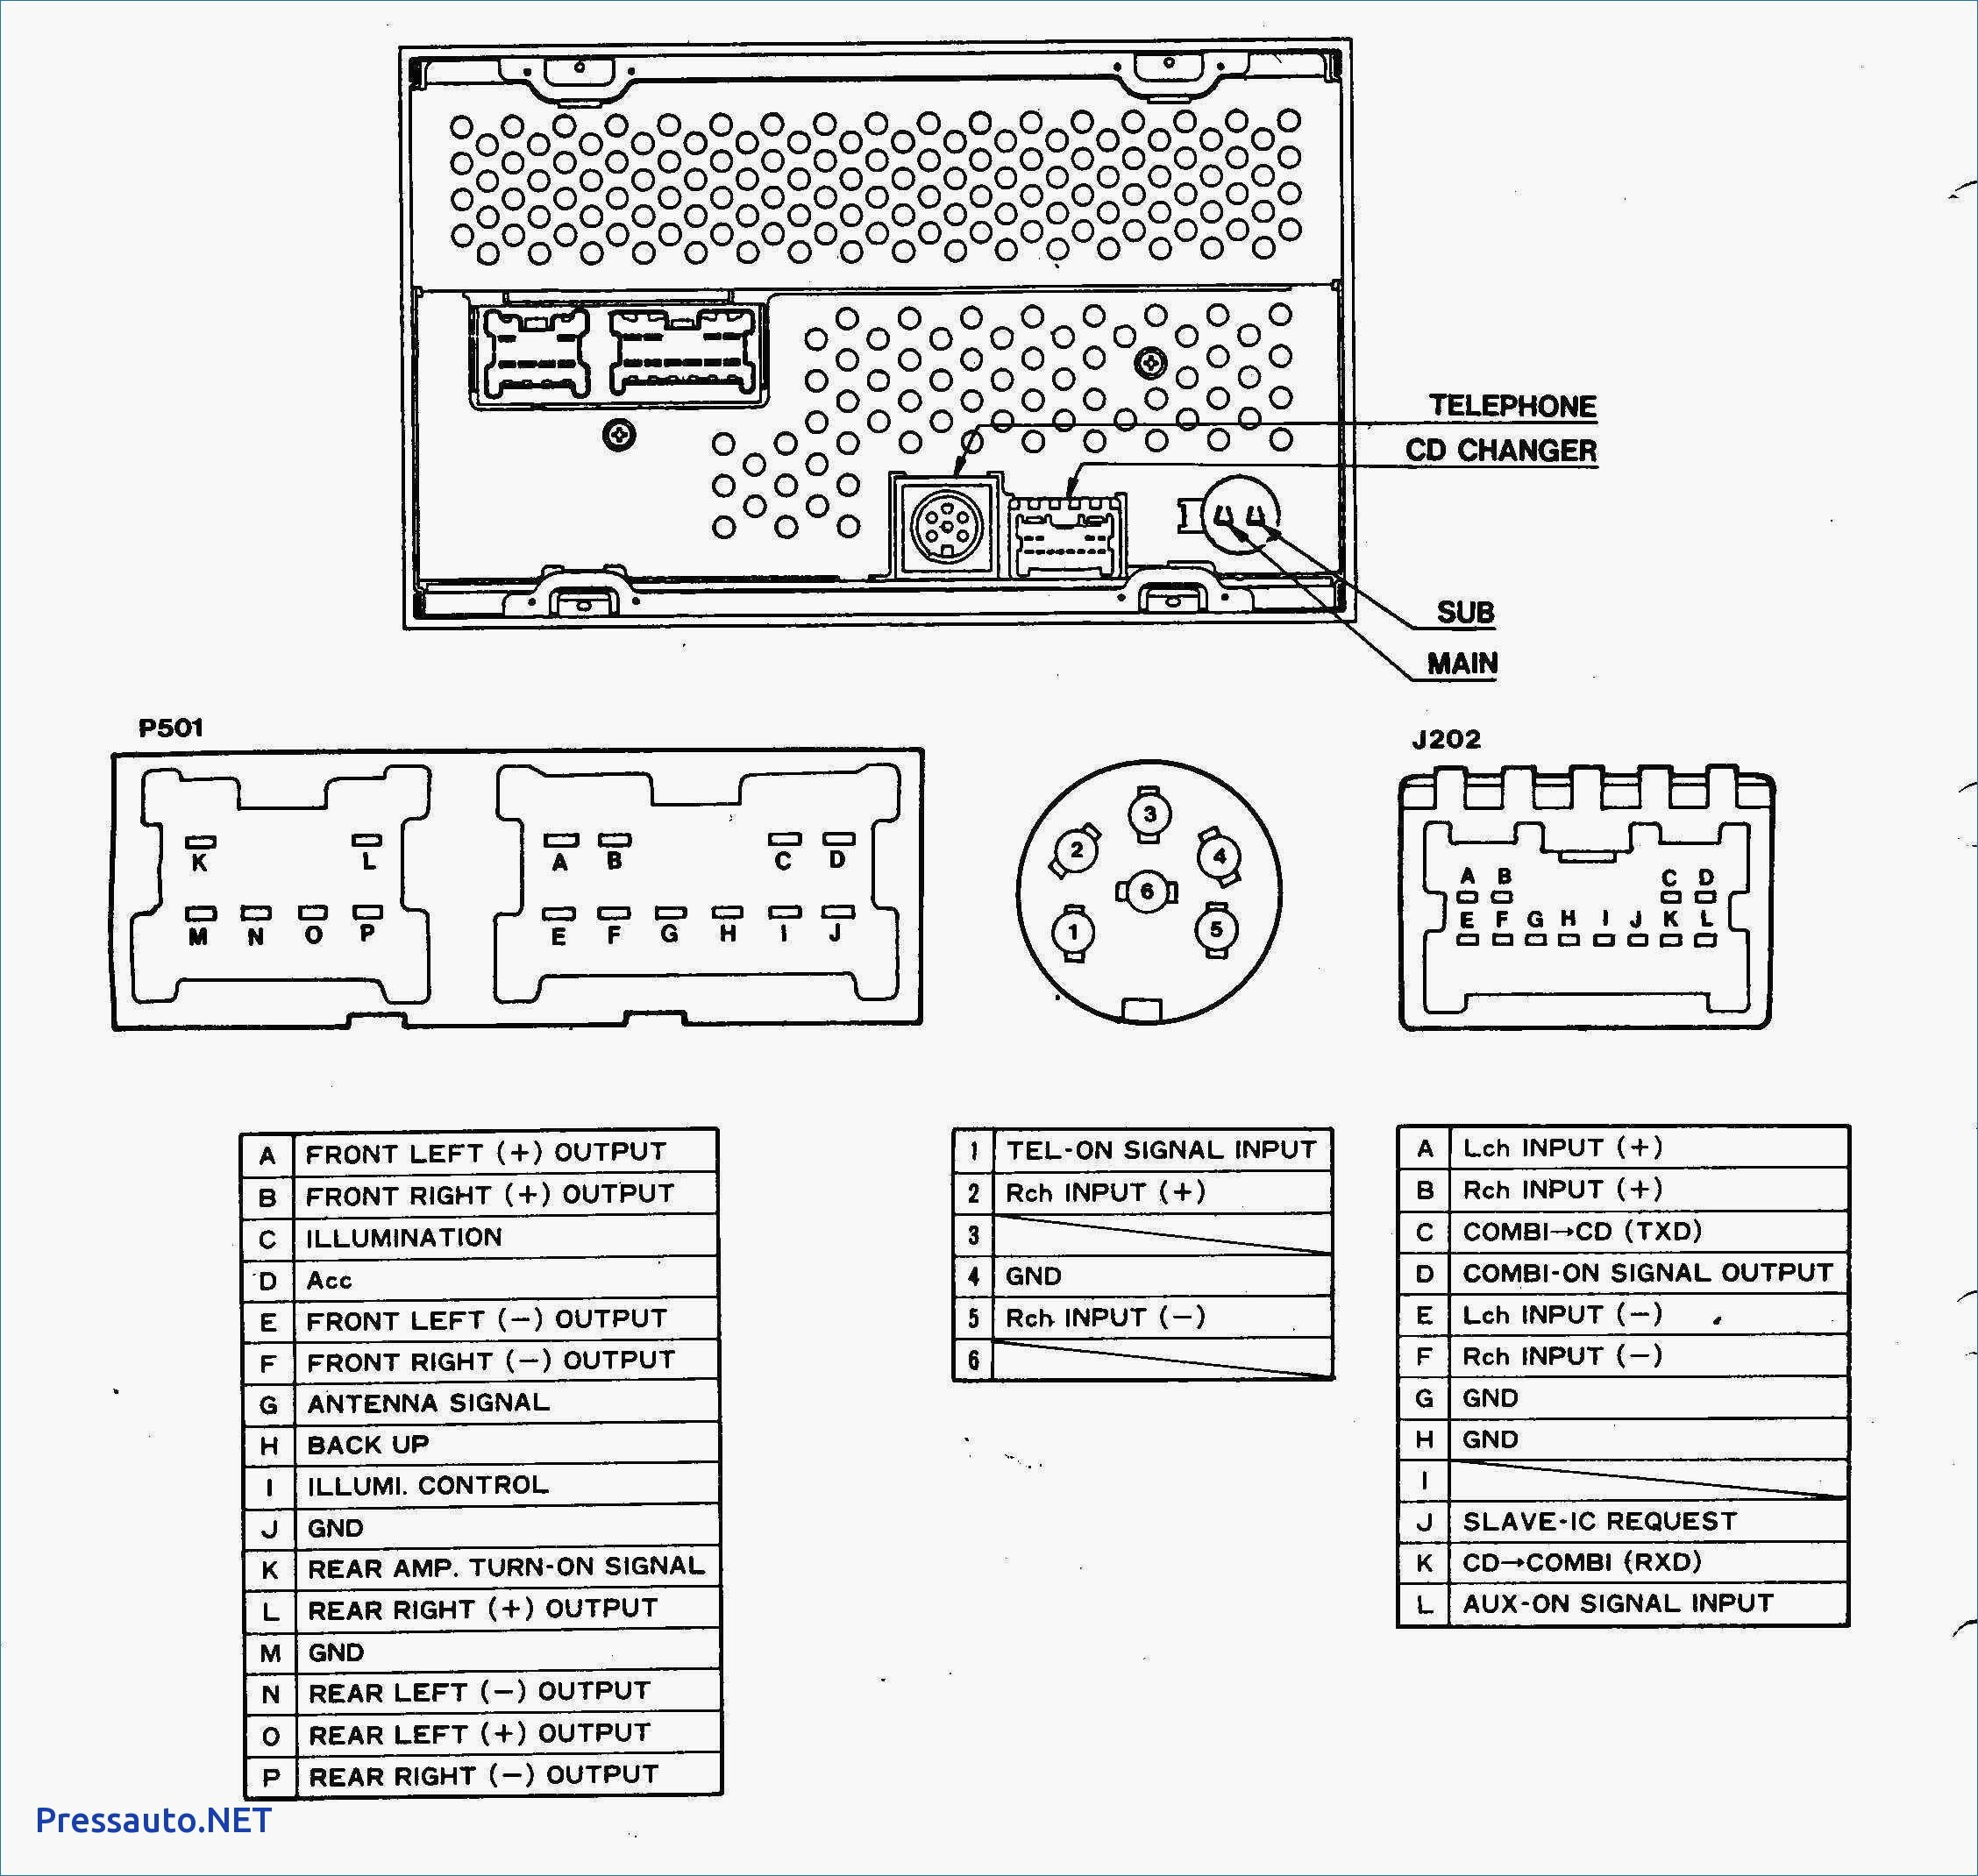 2000 Vw Jetta Radio Wiring Diagram Vw Stereo Wiring Harness Another Blog About Wiring Diagram • Of 2000 Vw Jetta Radio Wiring Diagram